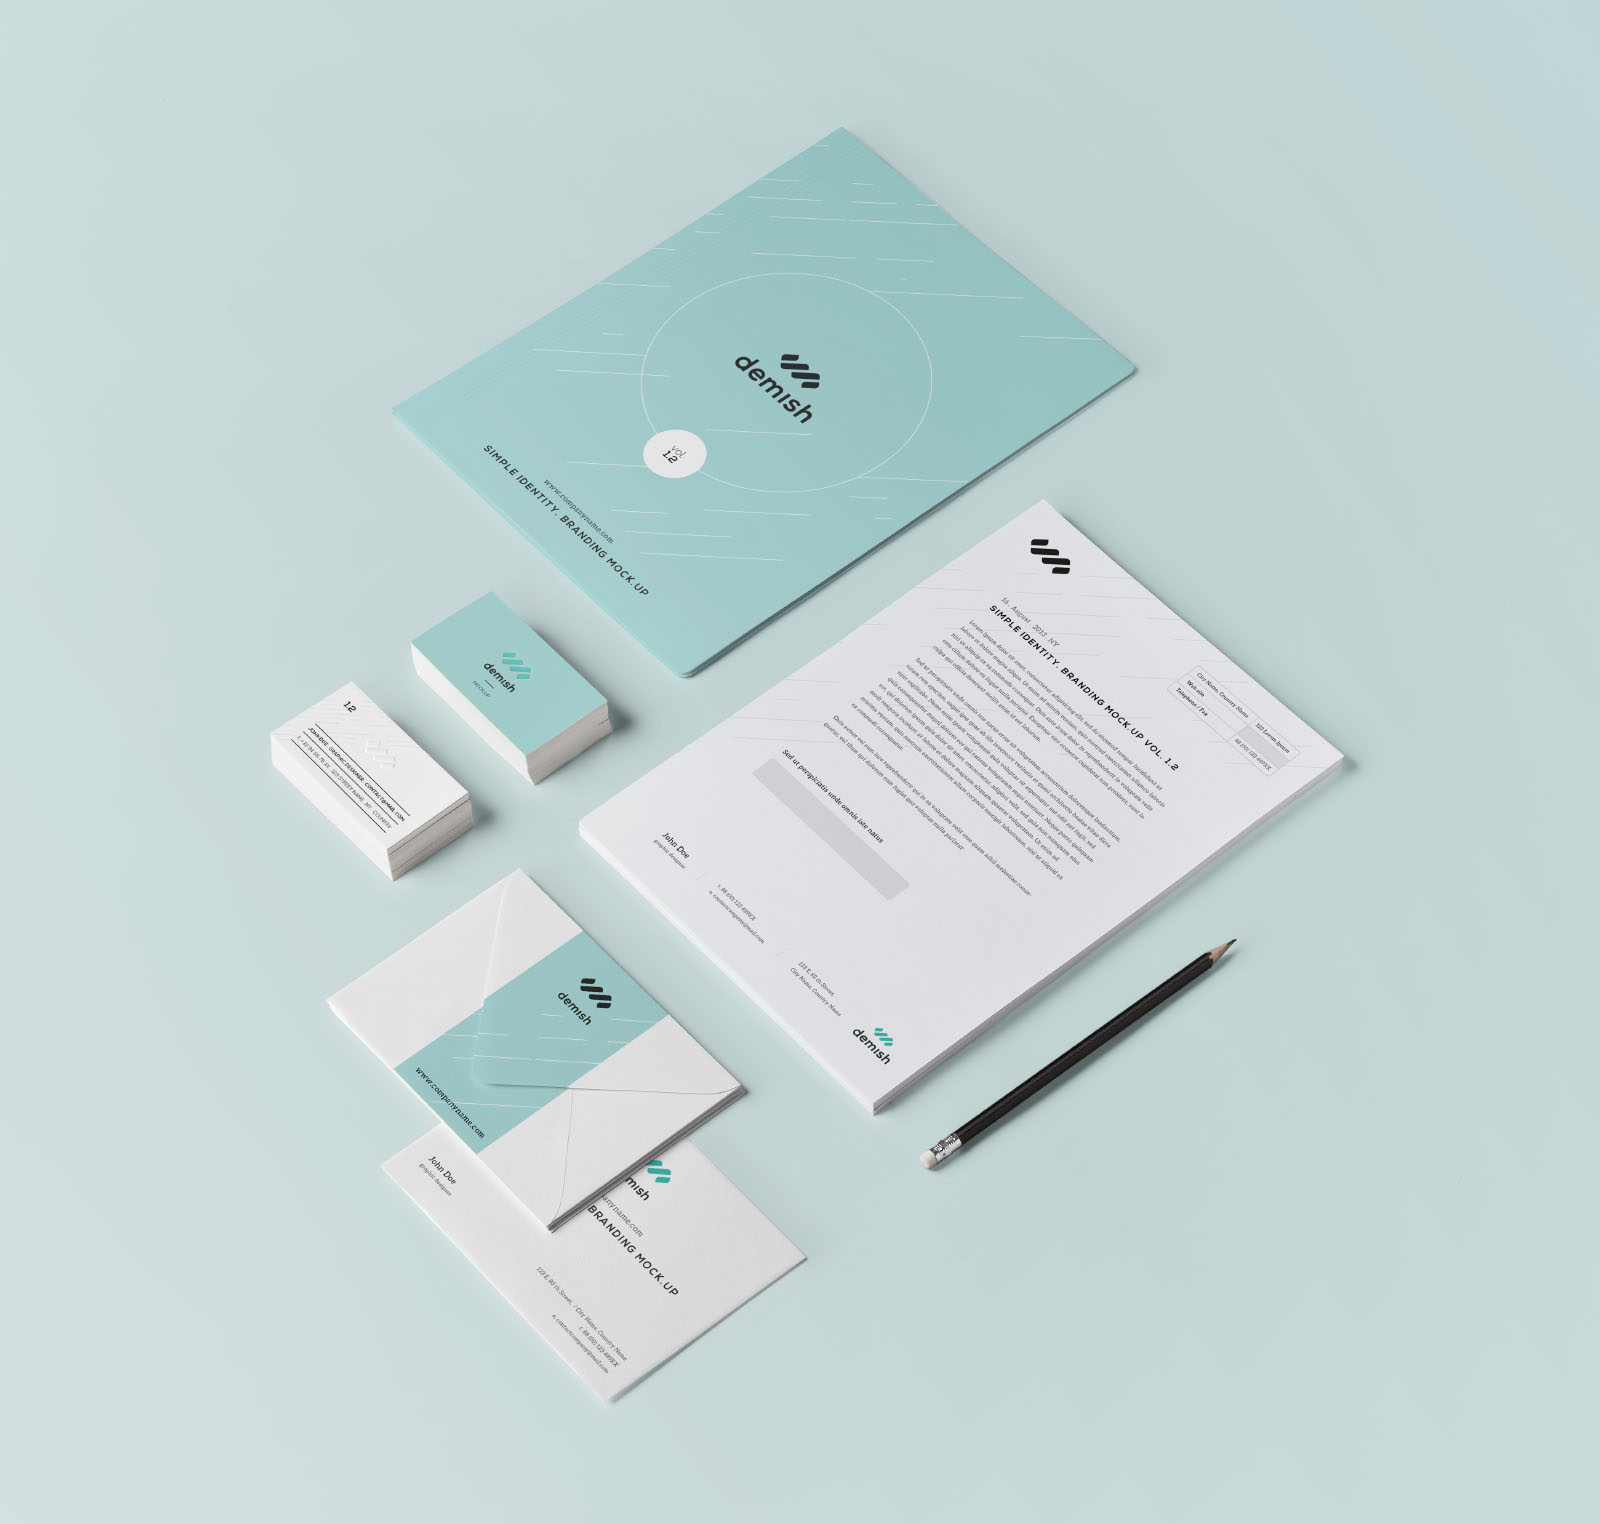 Simplified Branding Stationery Mockup